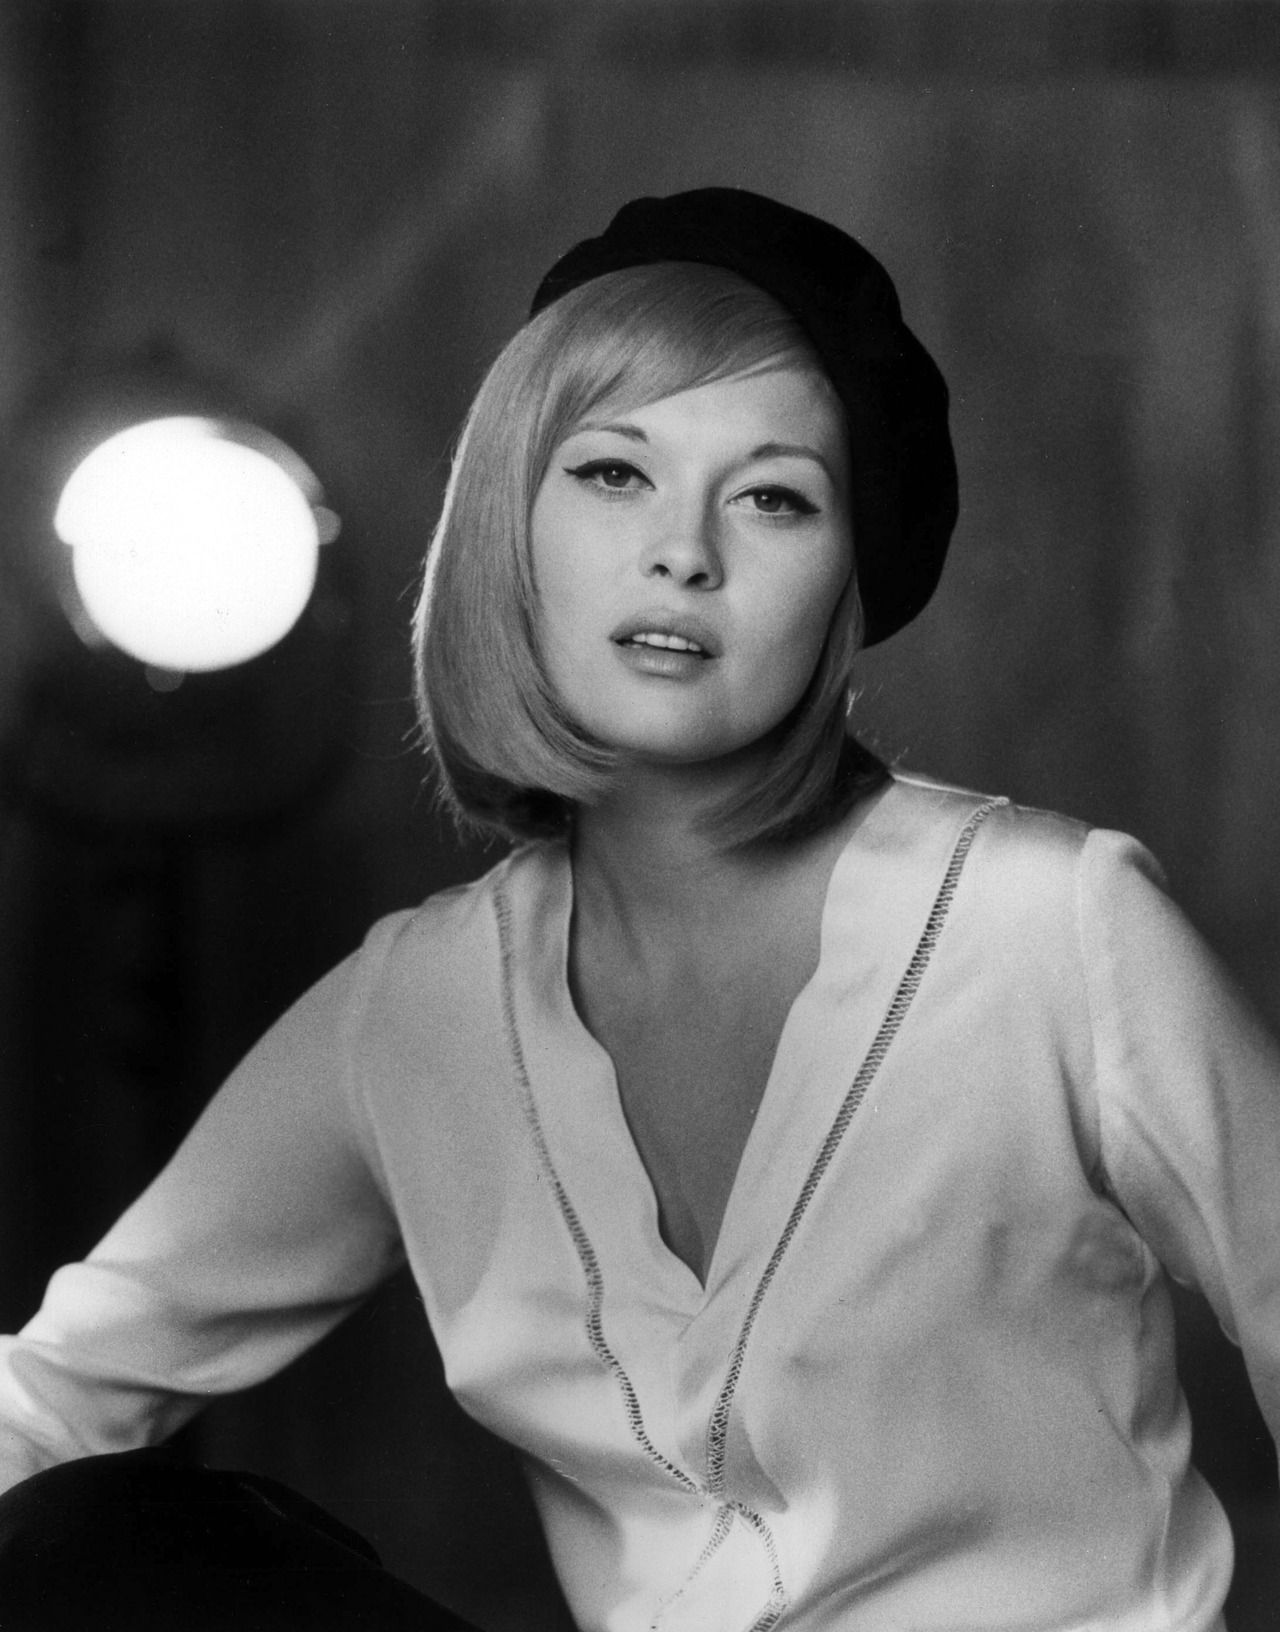 Happy Birthday to Dorothy Faye Dunaway born this day in 1941